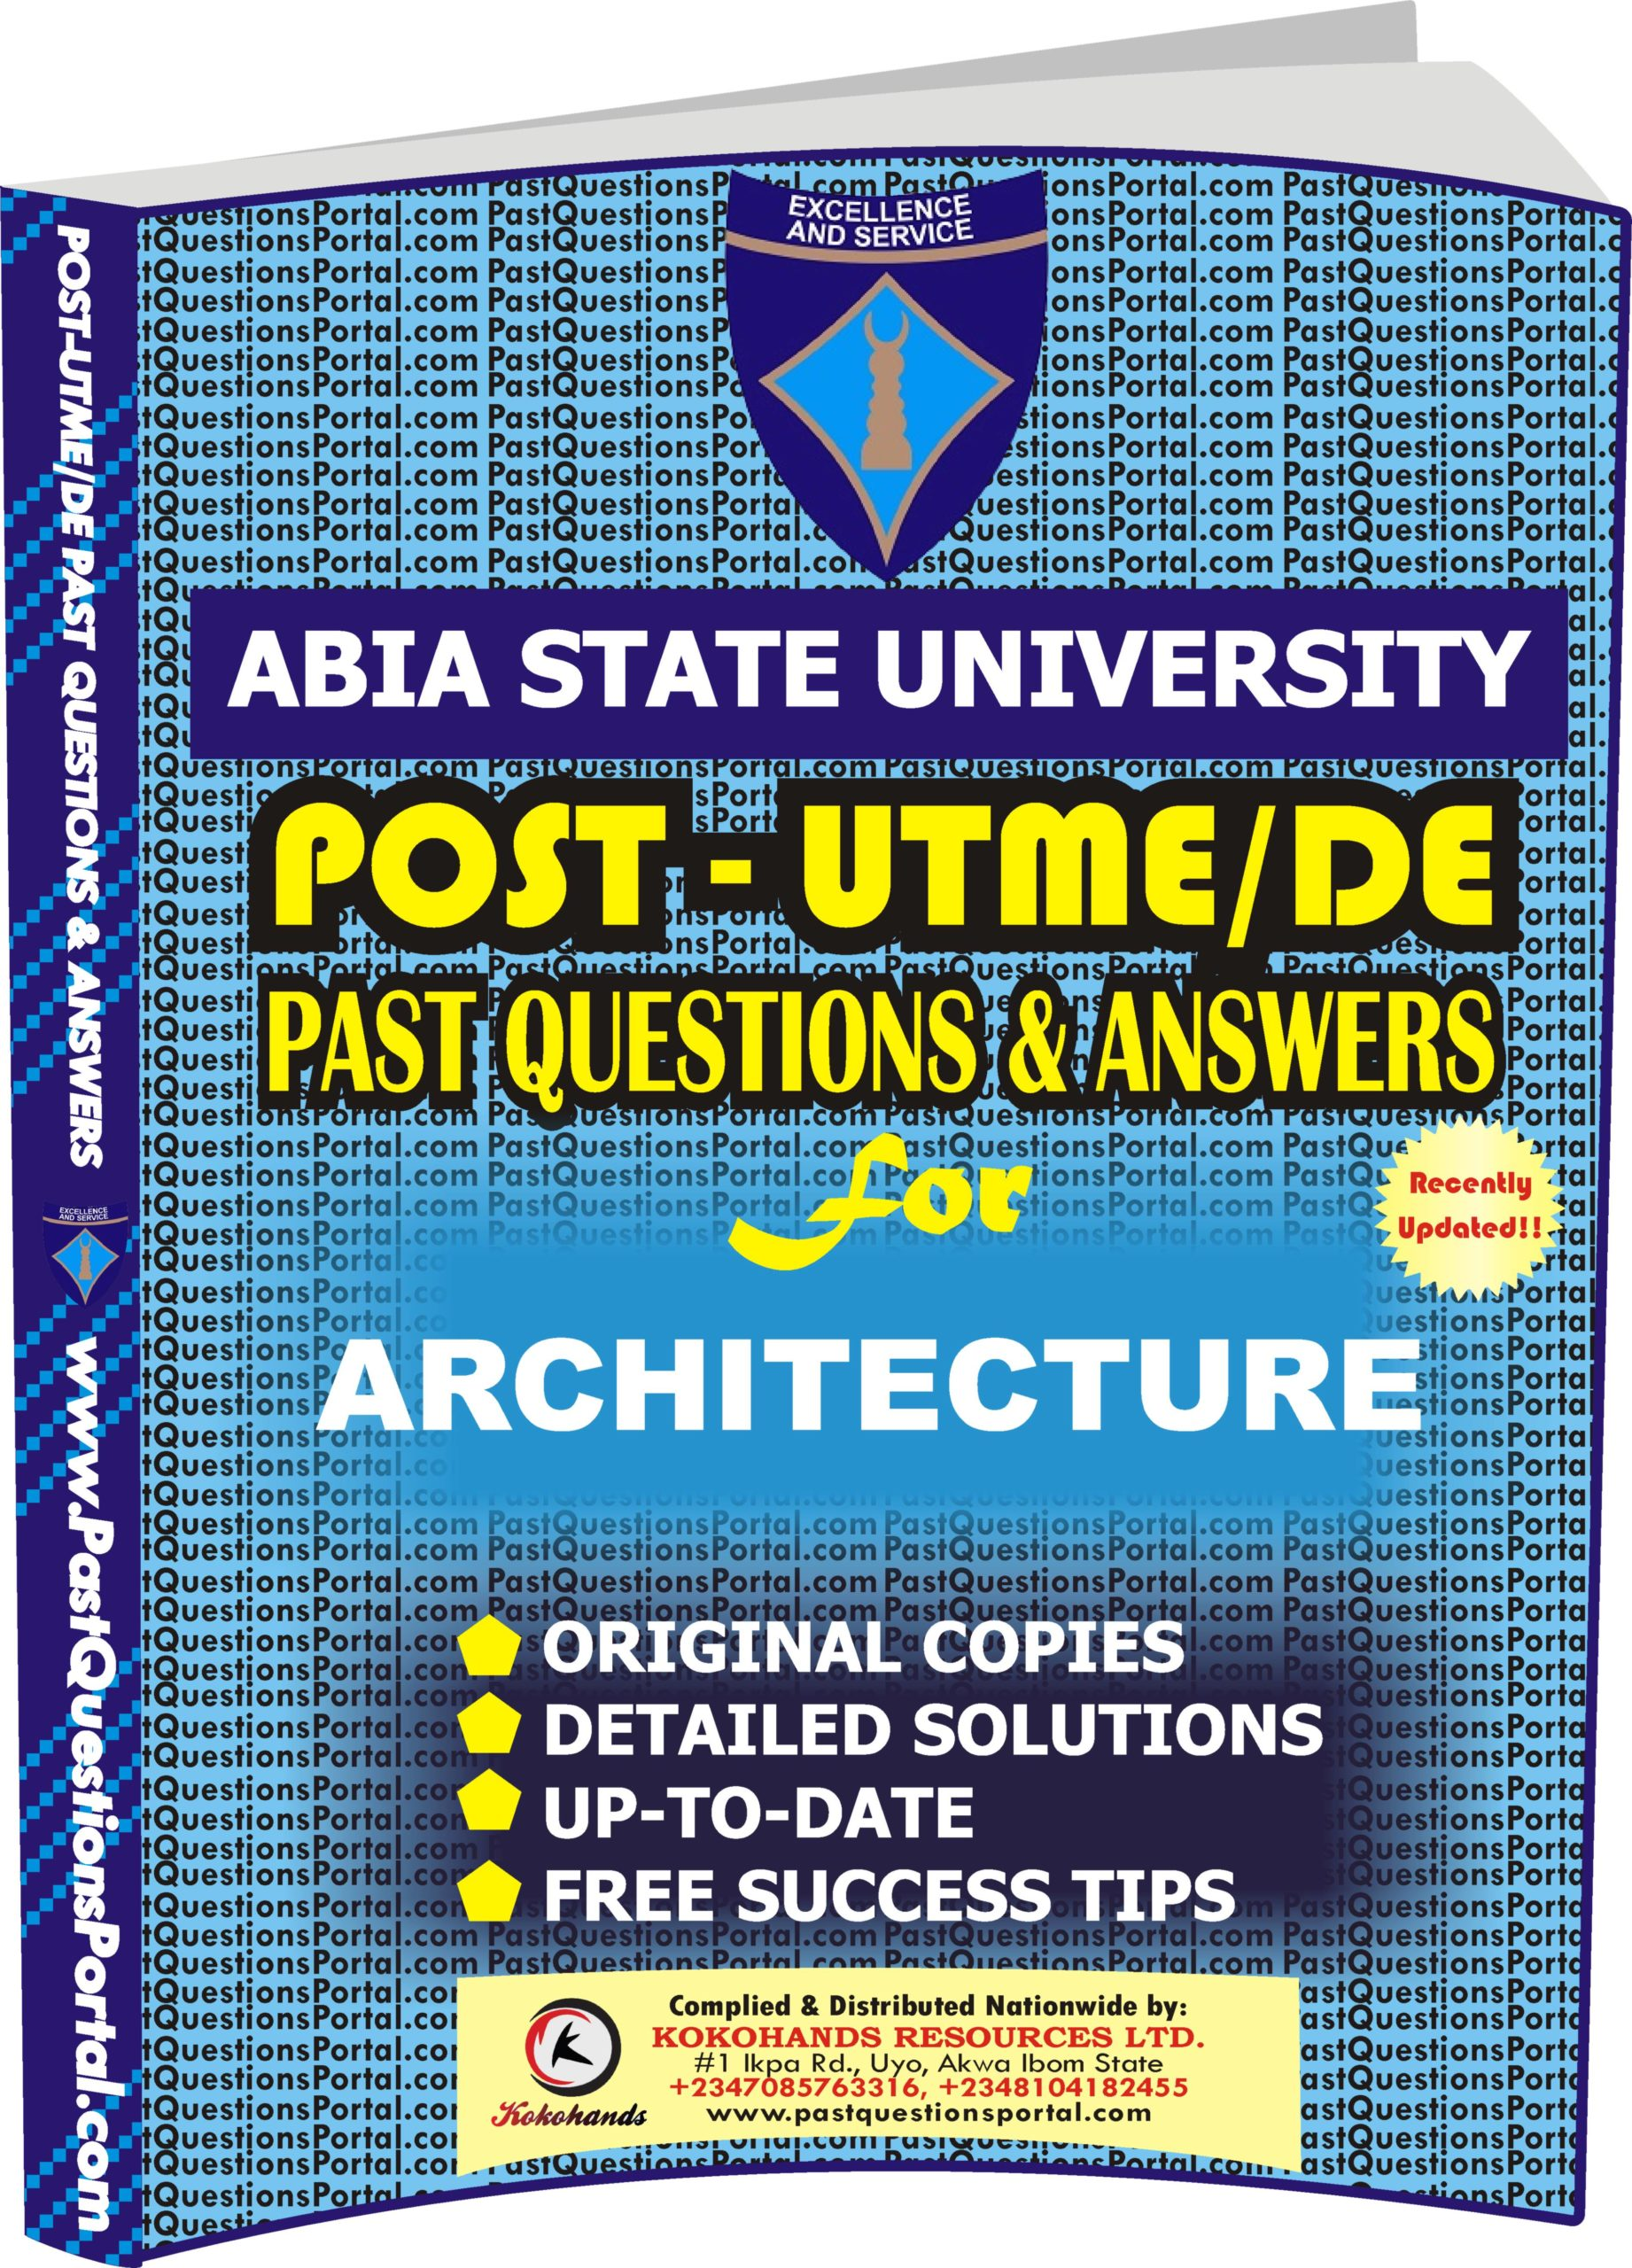 ABSU Post UTME Past Questions for ARCHITECTURE